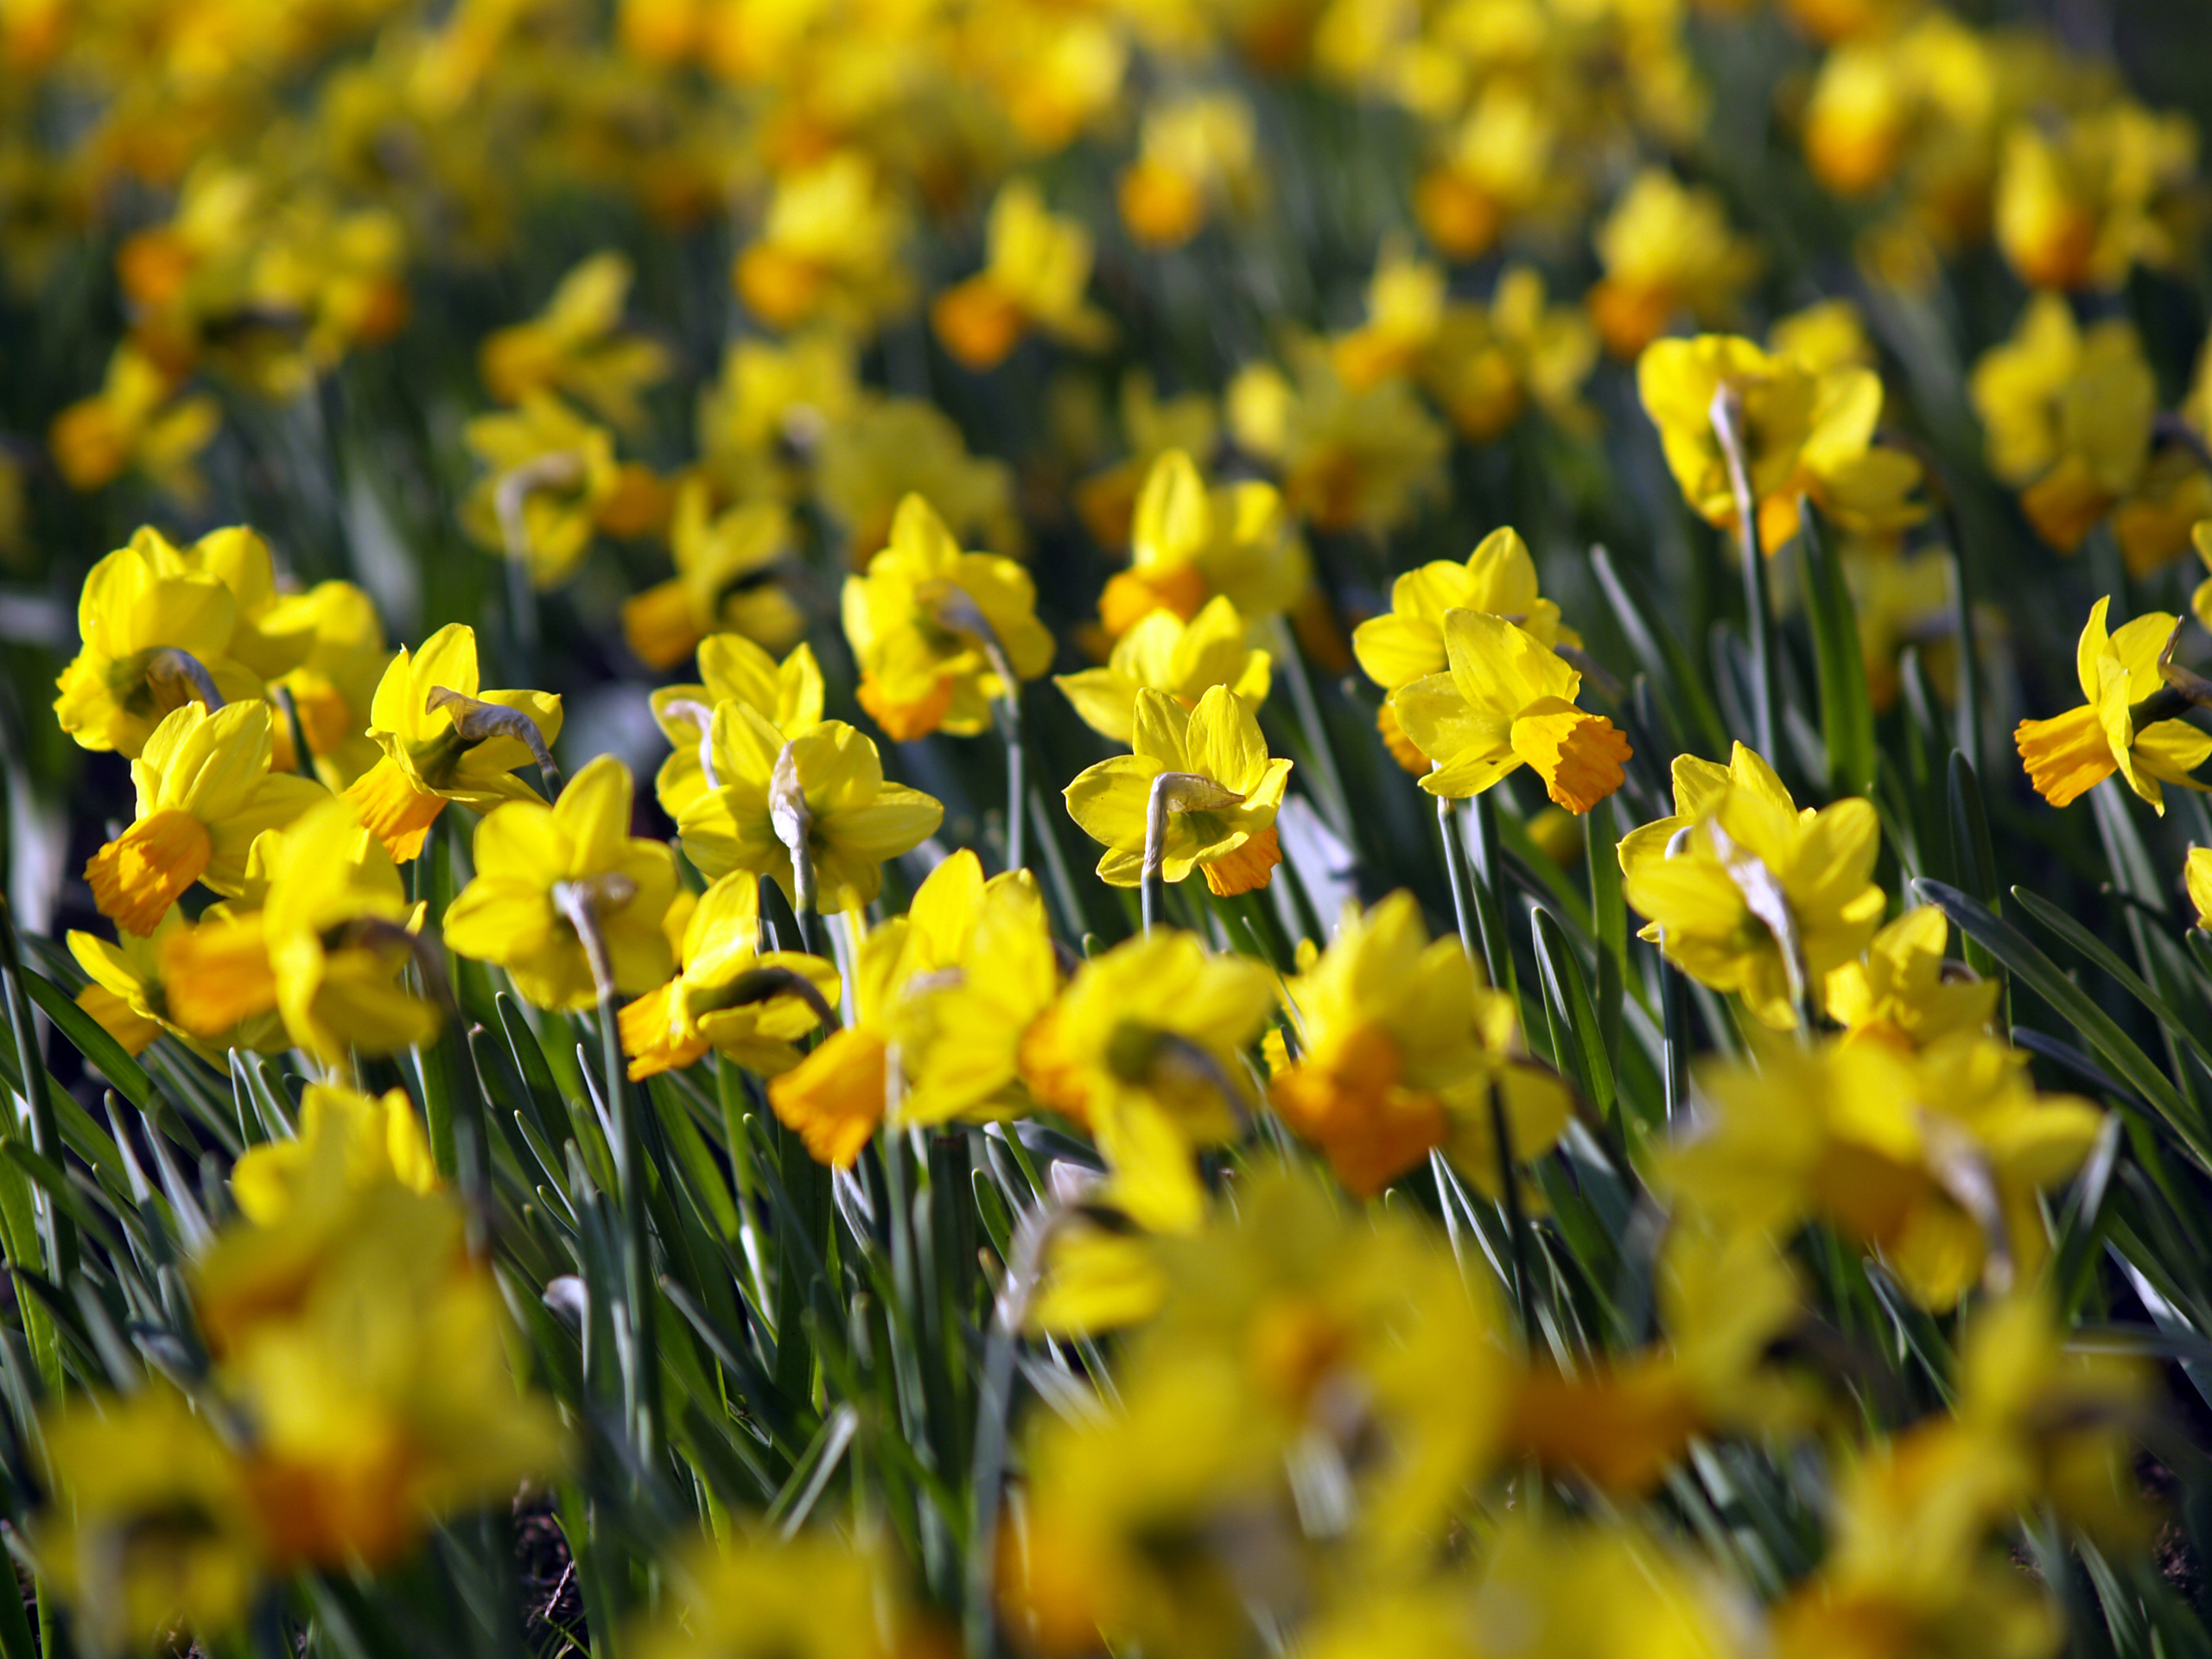 daffodil wallpapers | daffodil stock photos